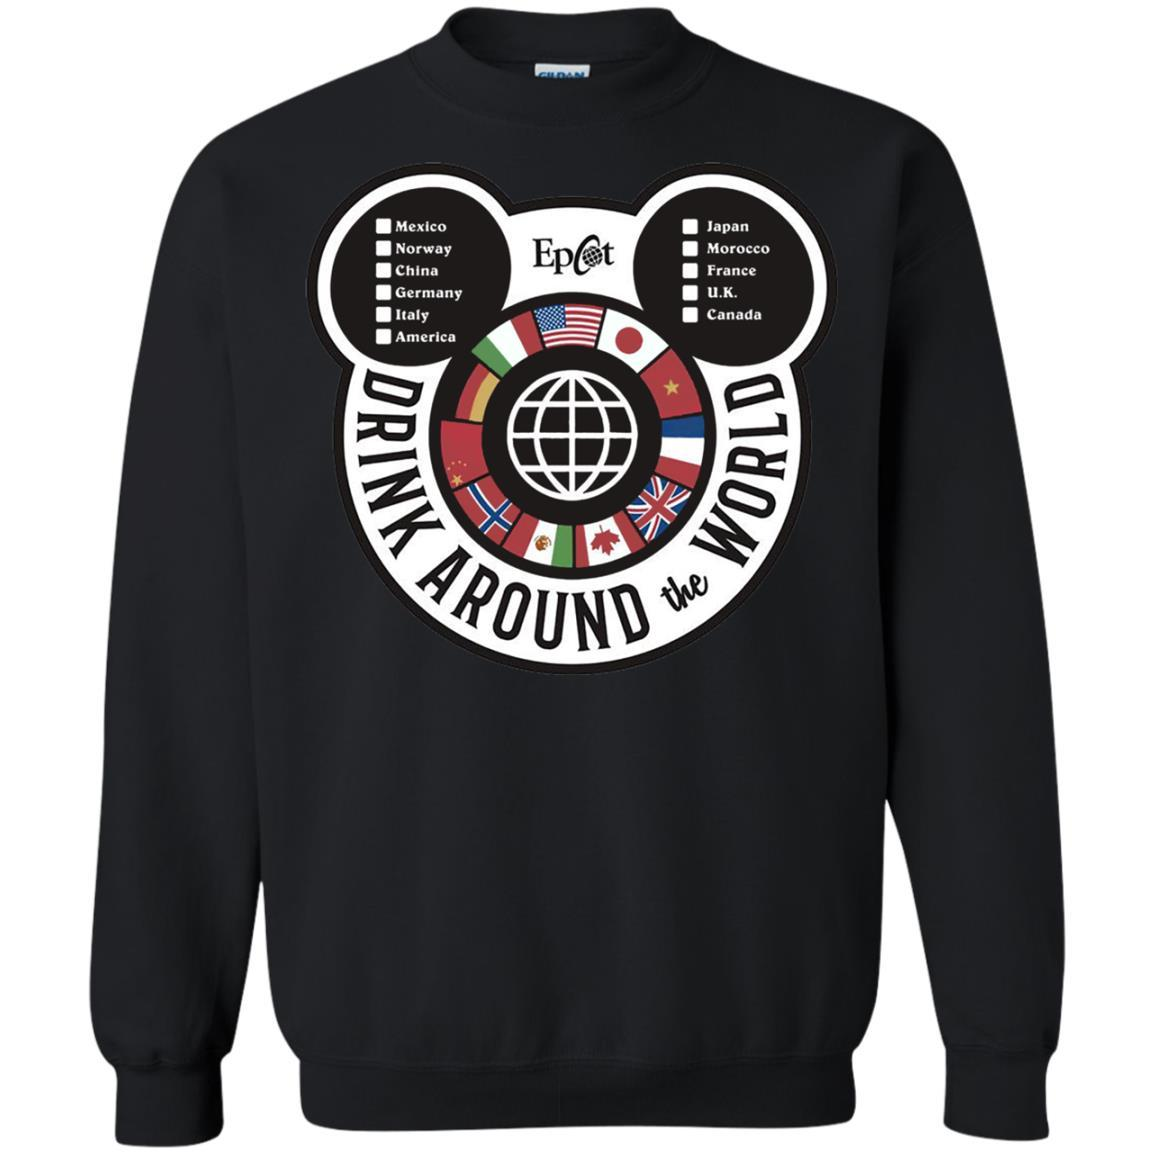 Drink Around the World - EPCOT Checklist - Crewneck Pullover Sweatshirt Black / 5XL